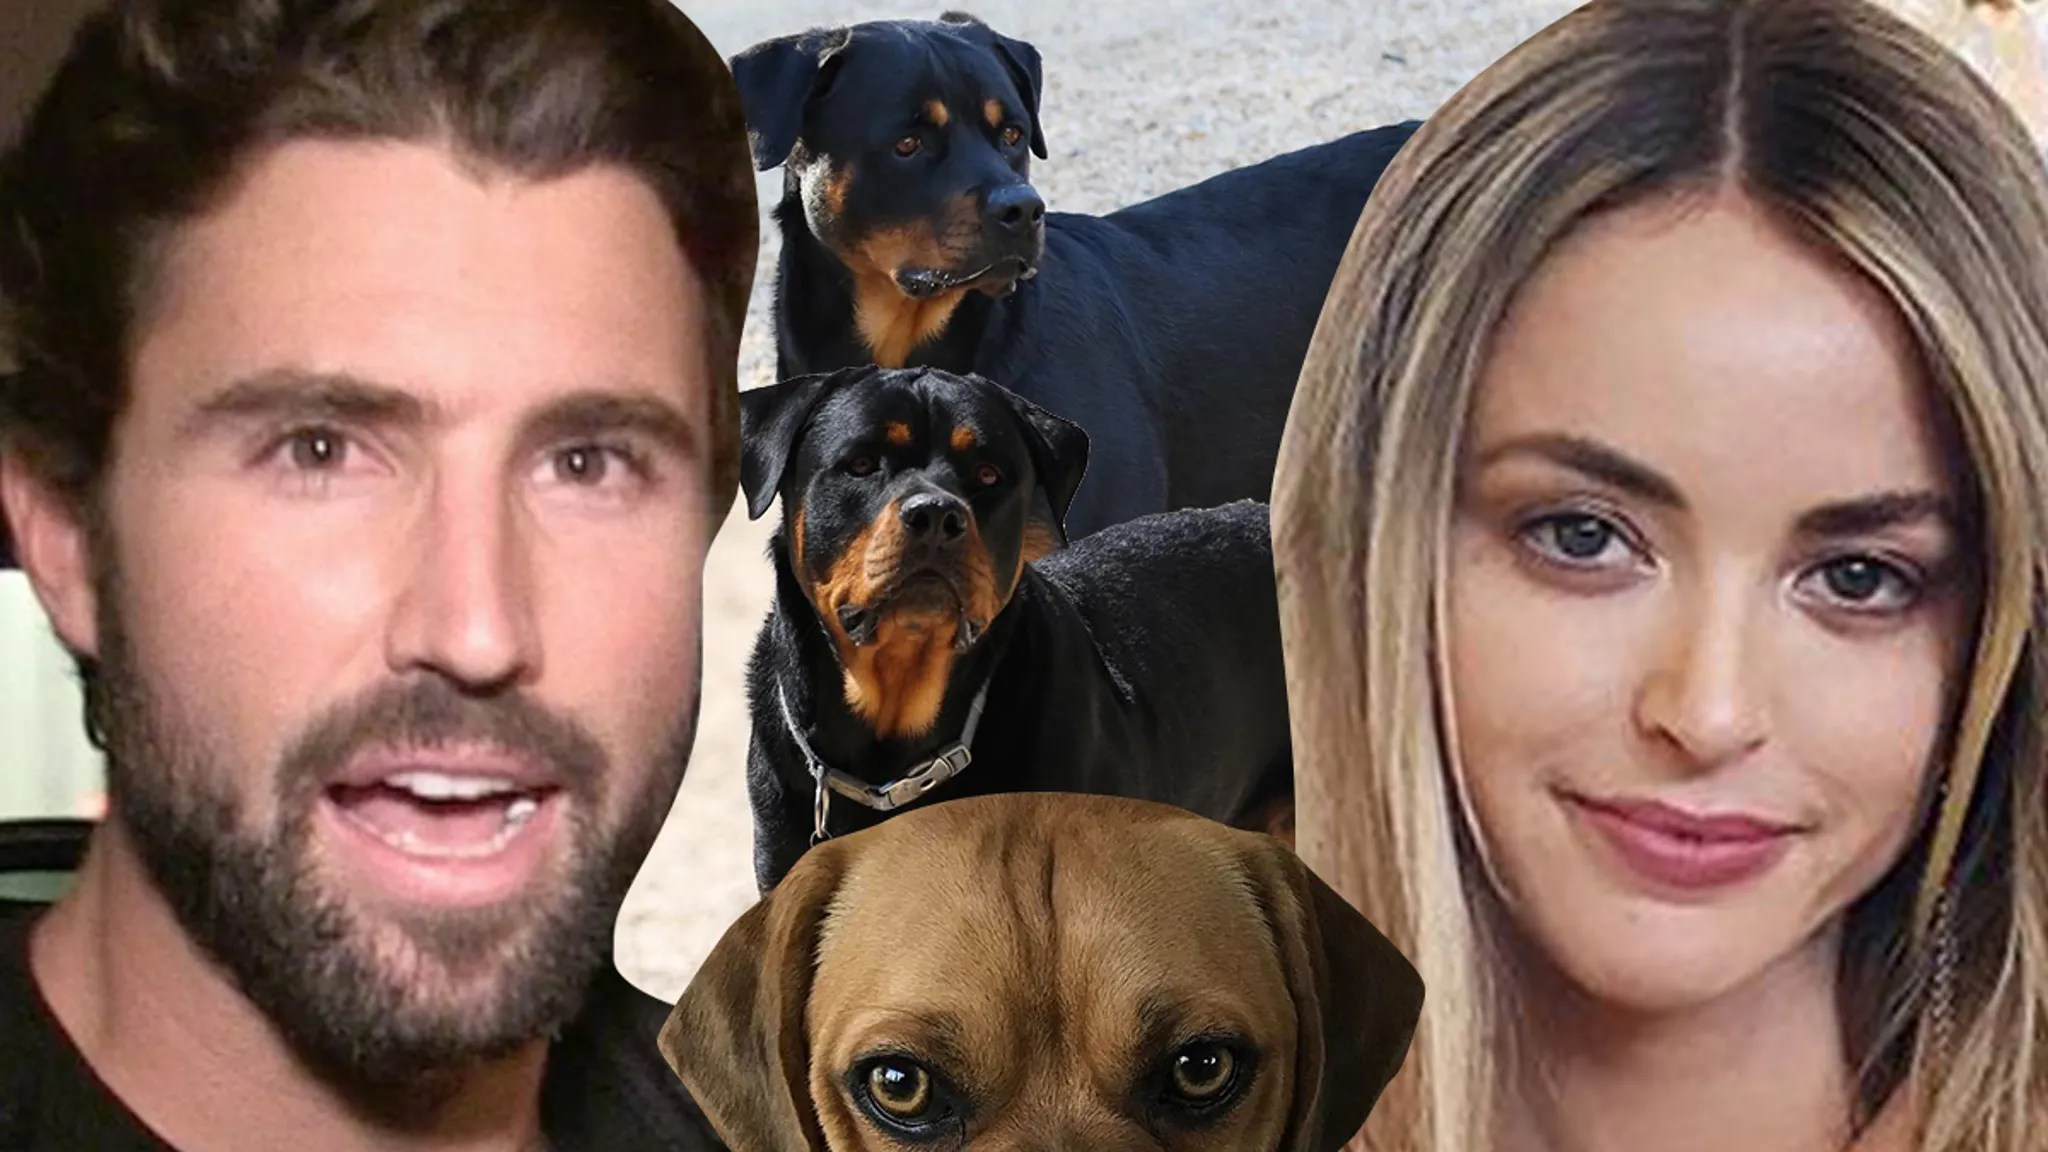 Brody Jenner and Kaitlynn Carter Co-Parenting Dogs, Not Back Together